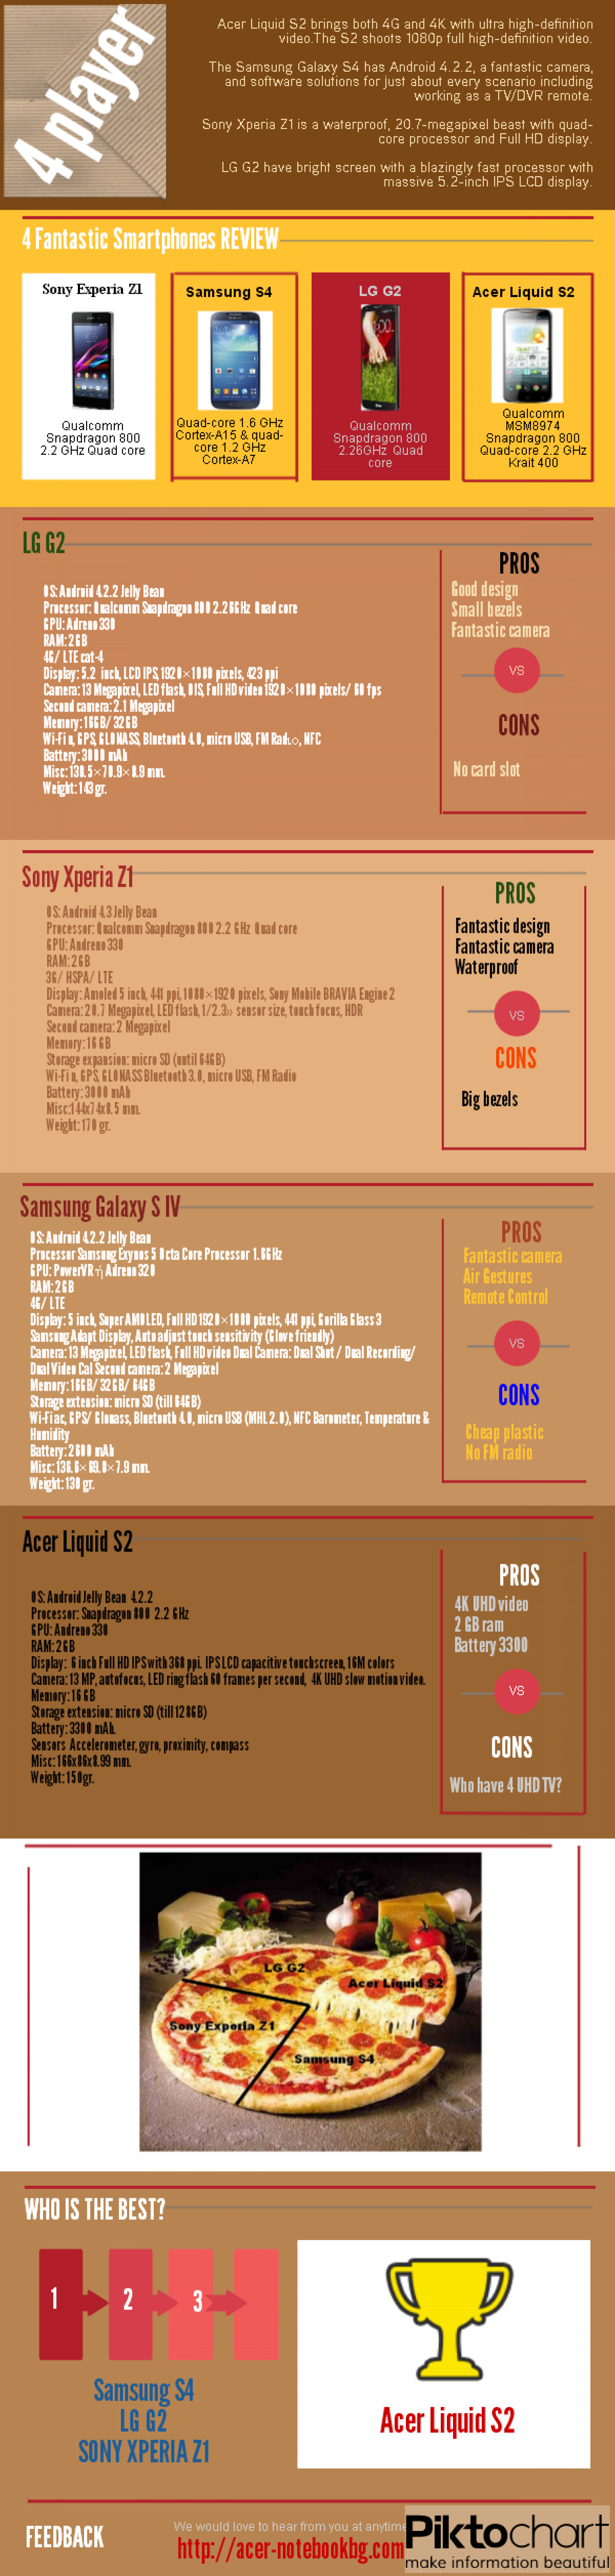 Acer Liquid S2, Samsung S4, LG G2, Sony Xperia Z1 who is the best? Infographic